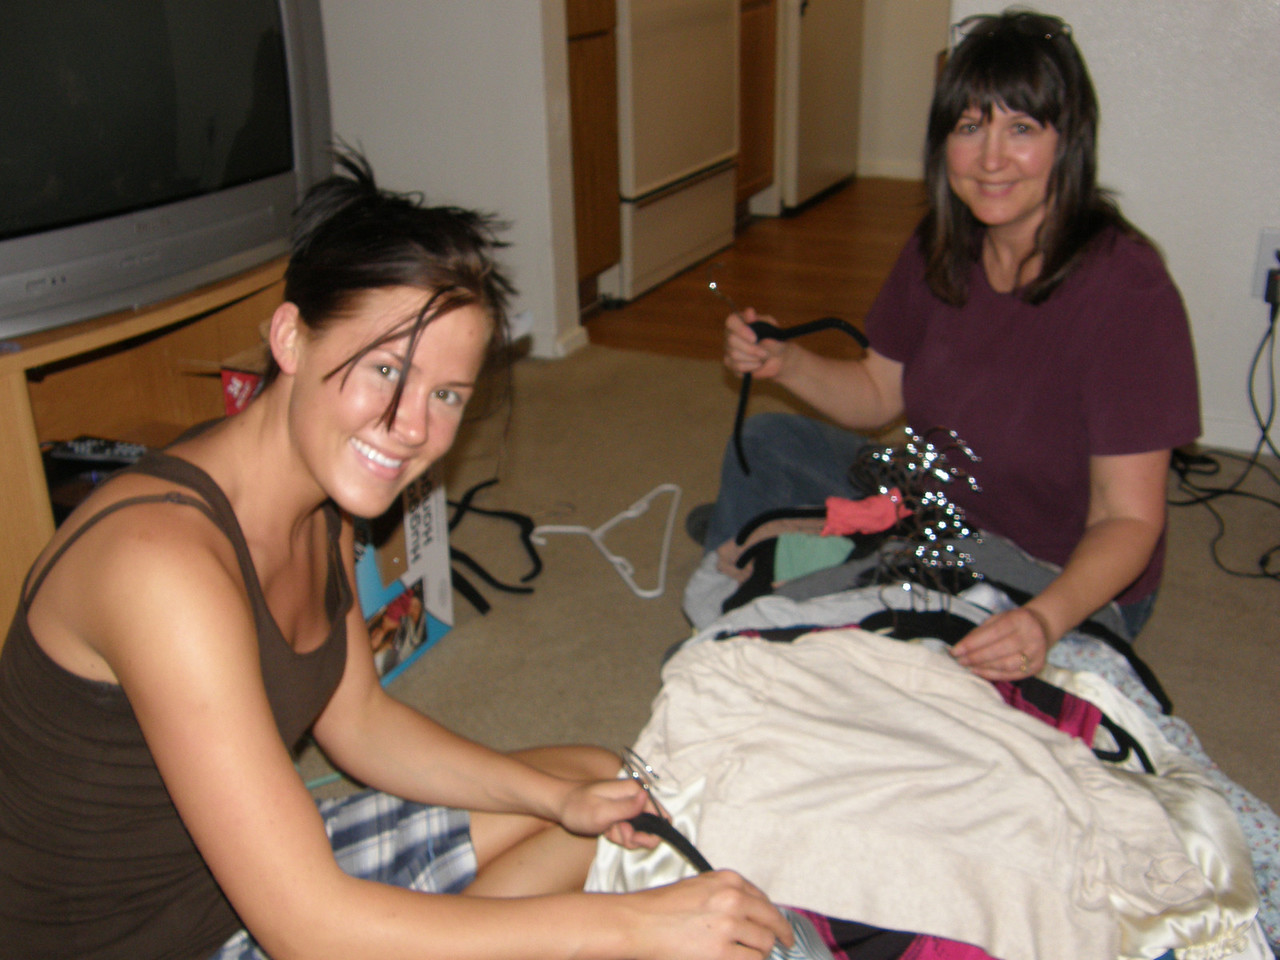 Sarah and mom working on some clothes.